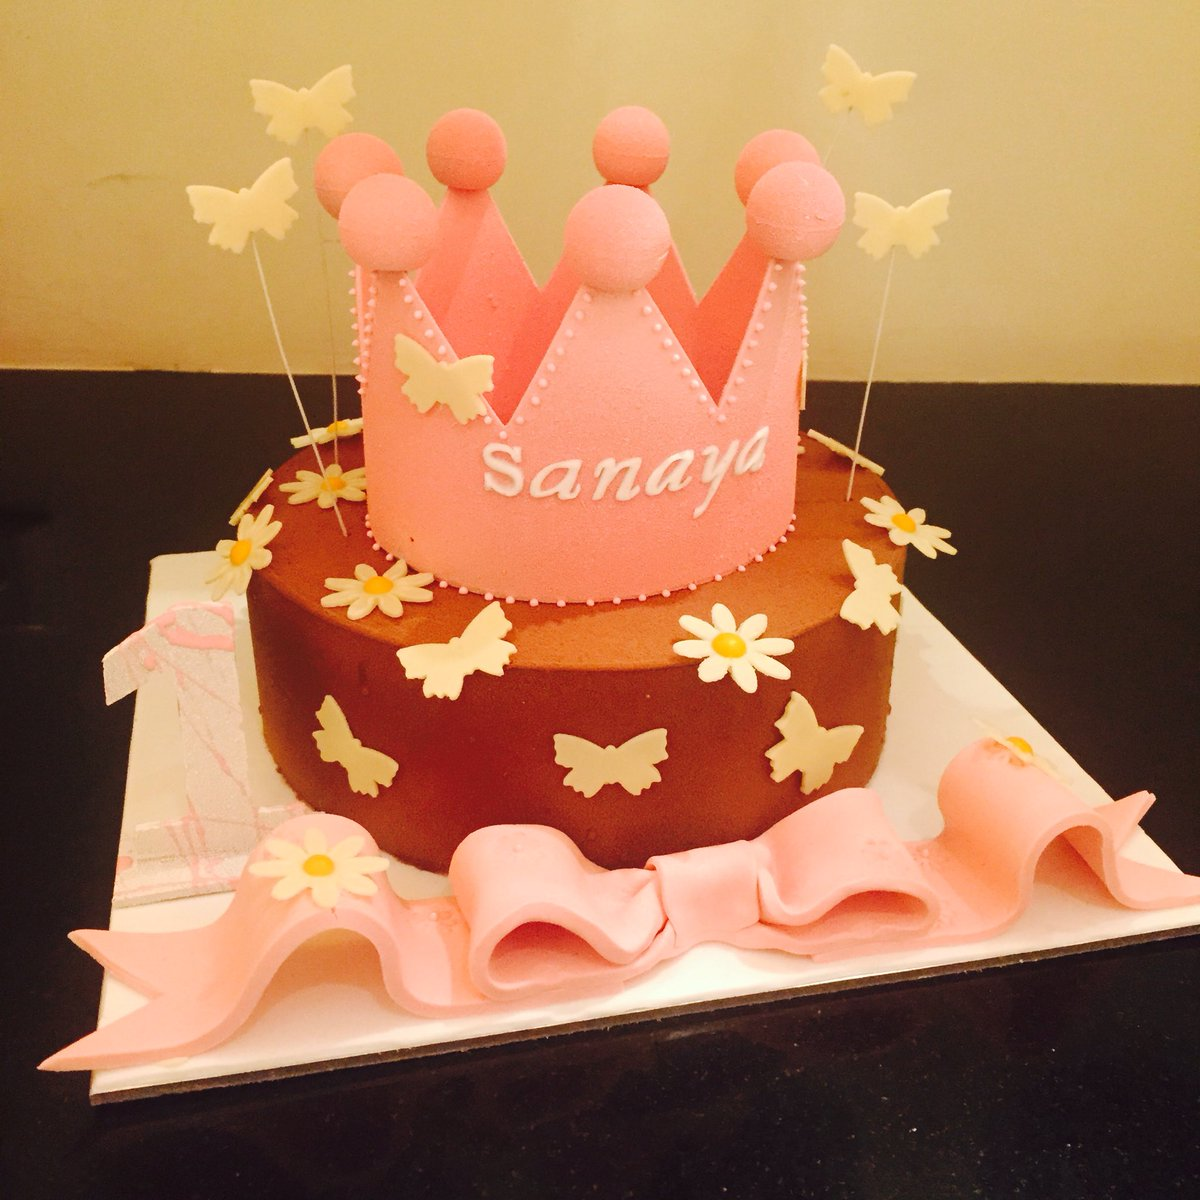 Pratik Deshmukh On Twitter A Lovely Birthday Cake Waiting For Princess Named Sanaya At The Oberoi Patisserie Delicatessen